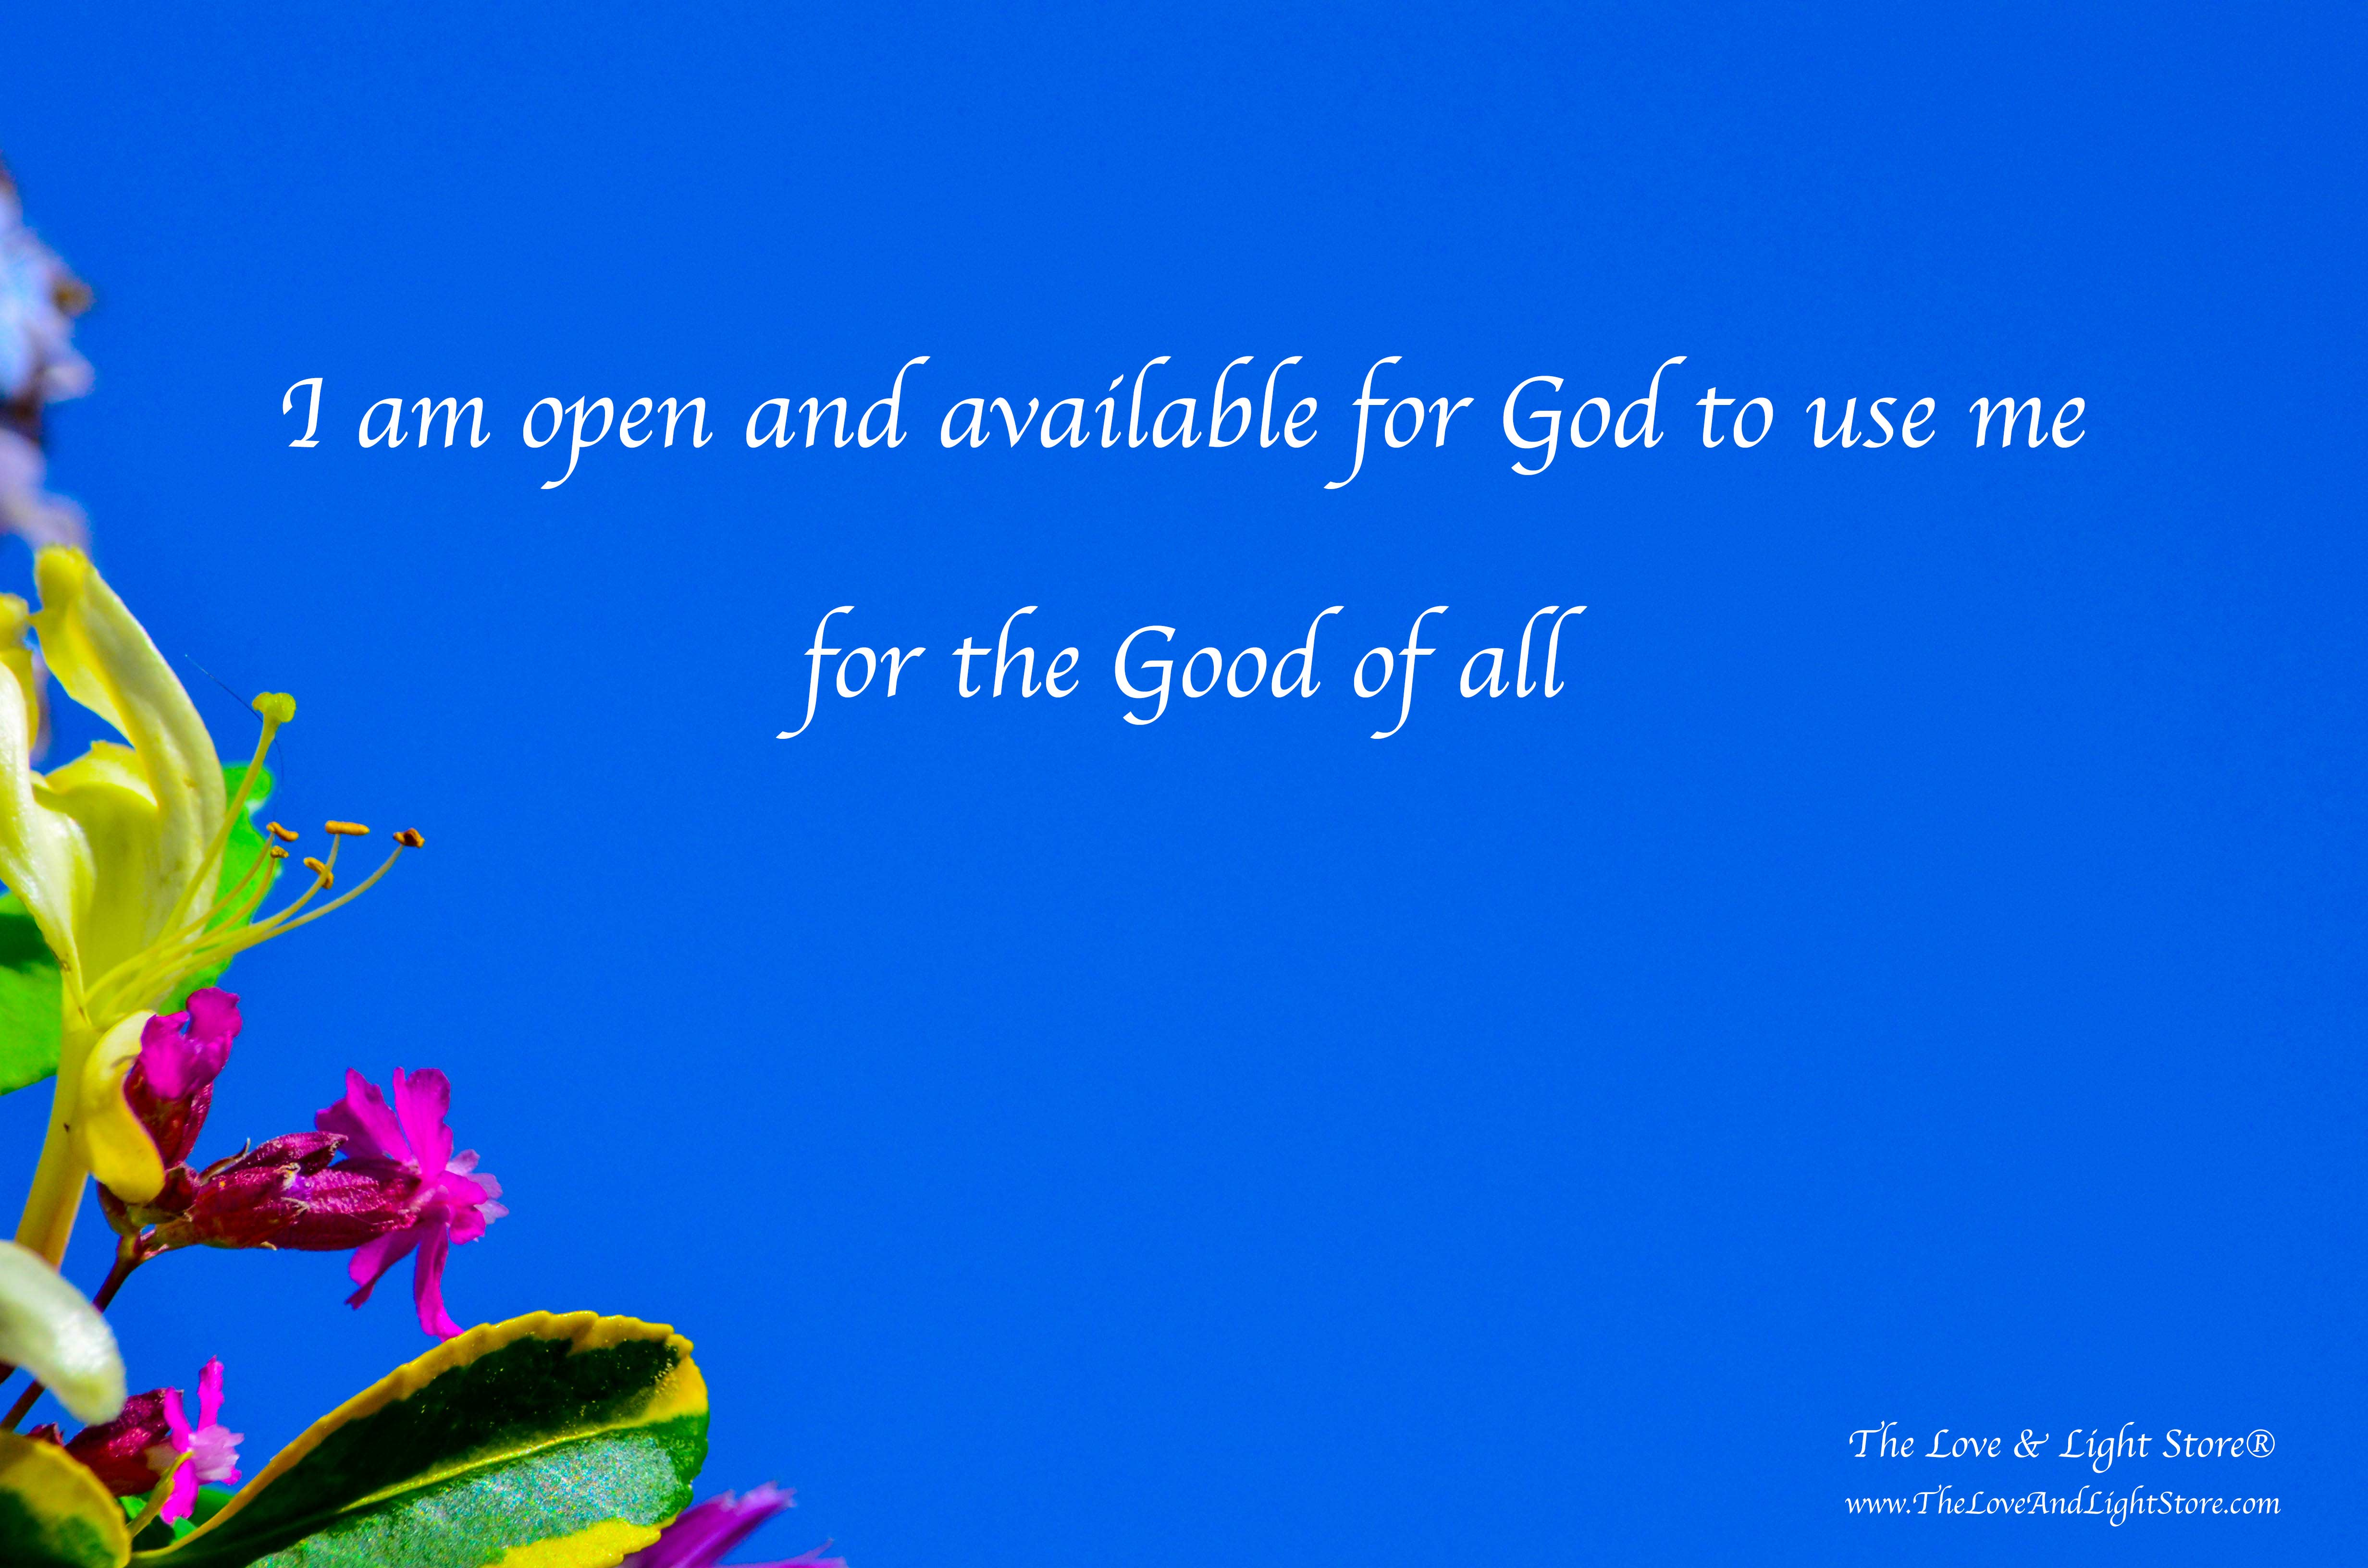 Being open and available, surrendering to the will of God is a beautiful and most fulfilling way of life, where the good keeps flowing abundantly